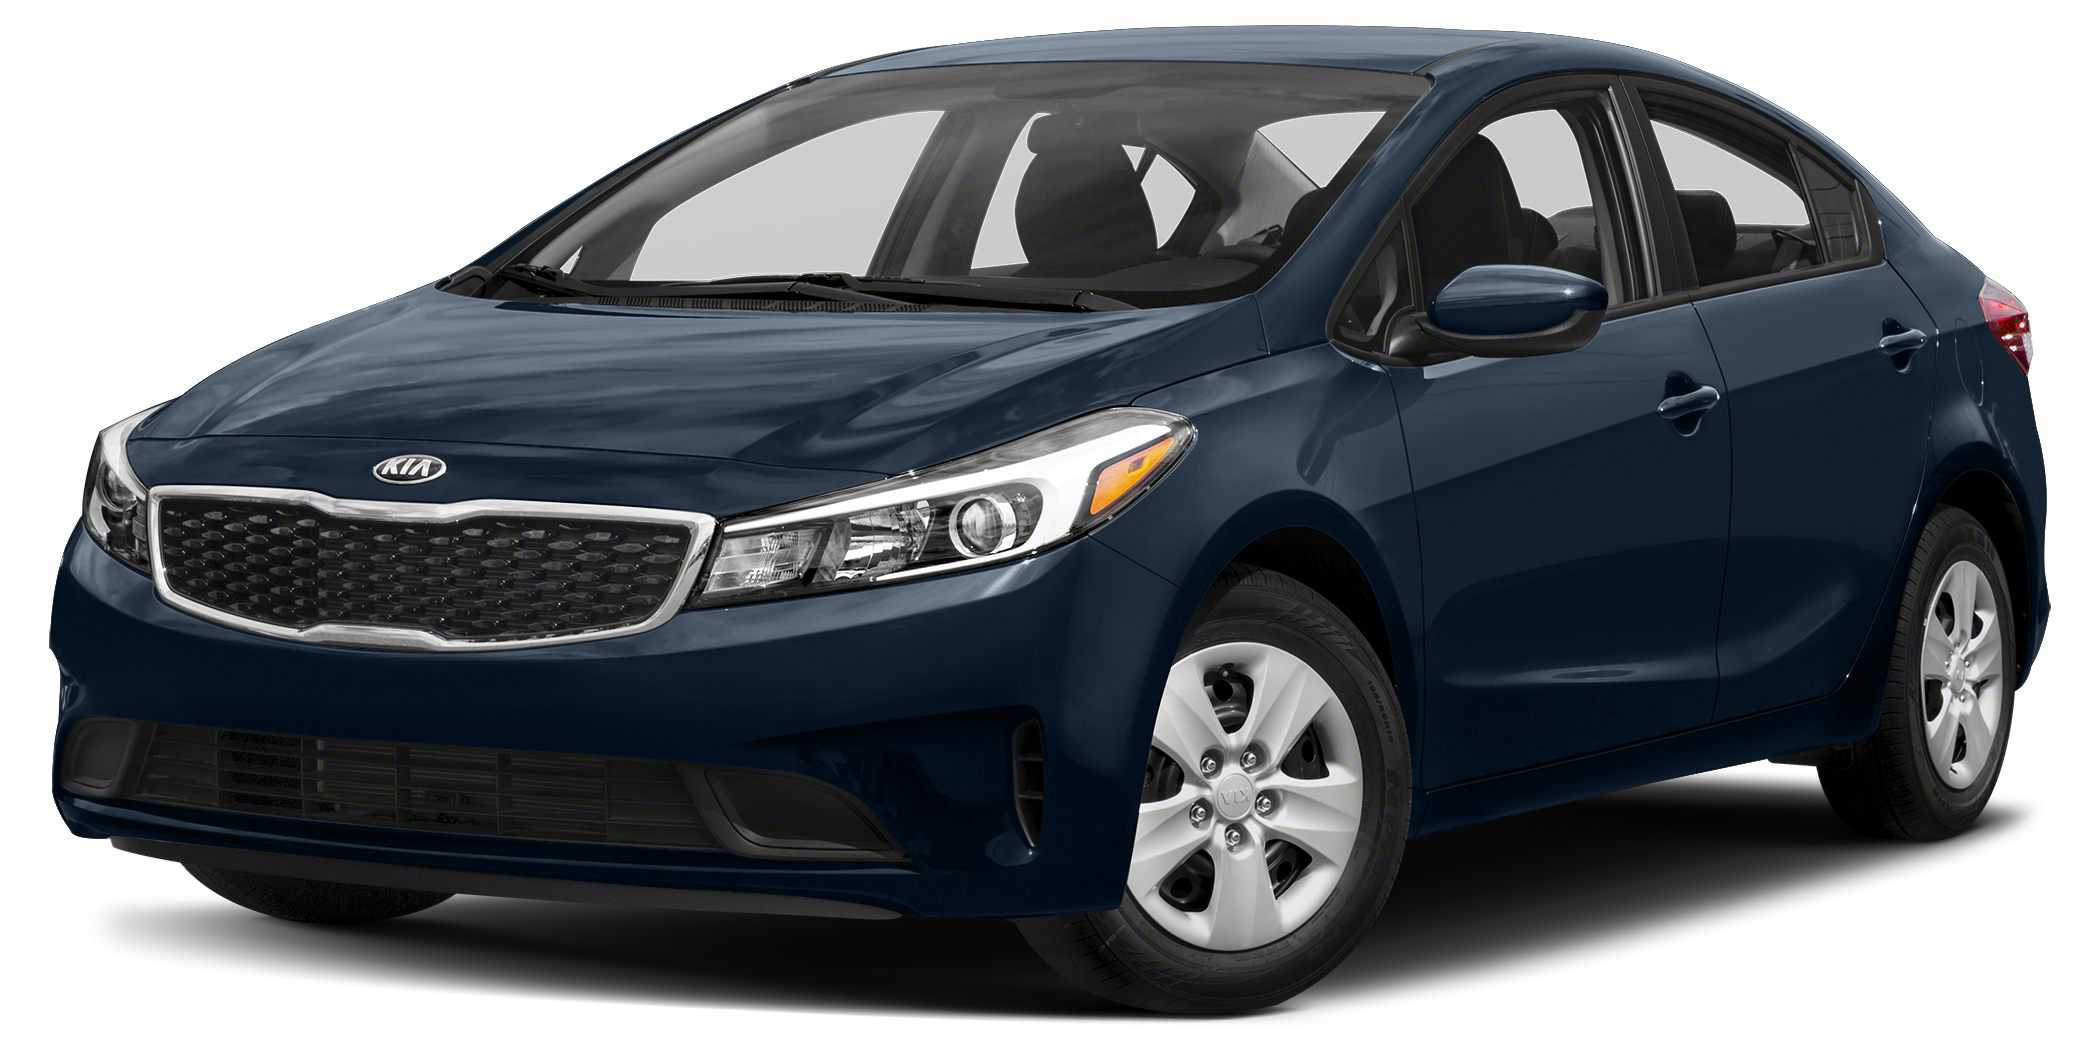 2017 kia forte for sale in east petersburg pa. Black Bedroom Furniture Sets. Home Design Ideas